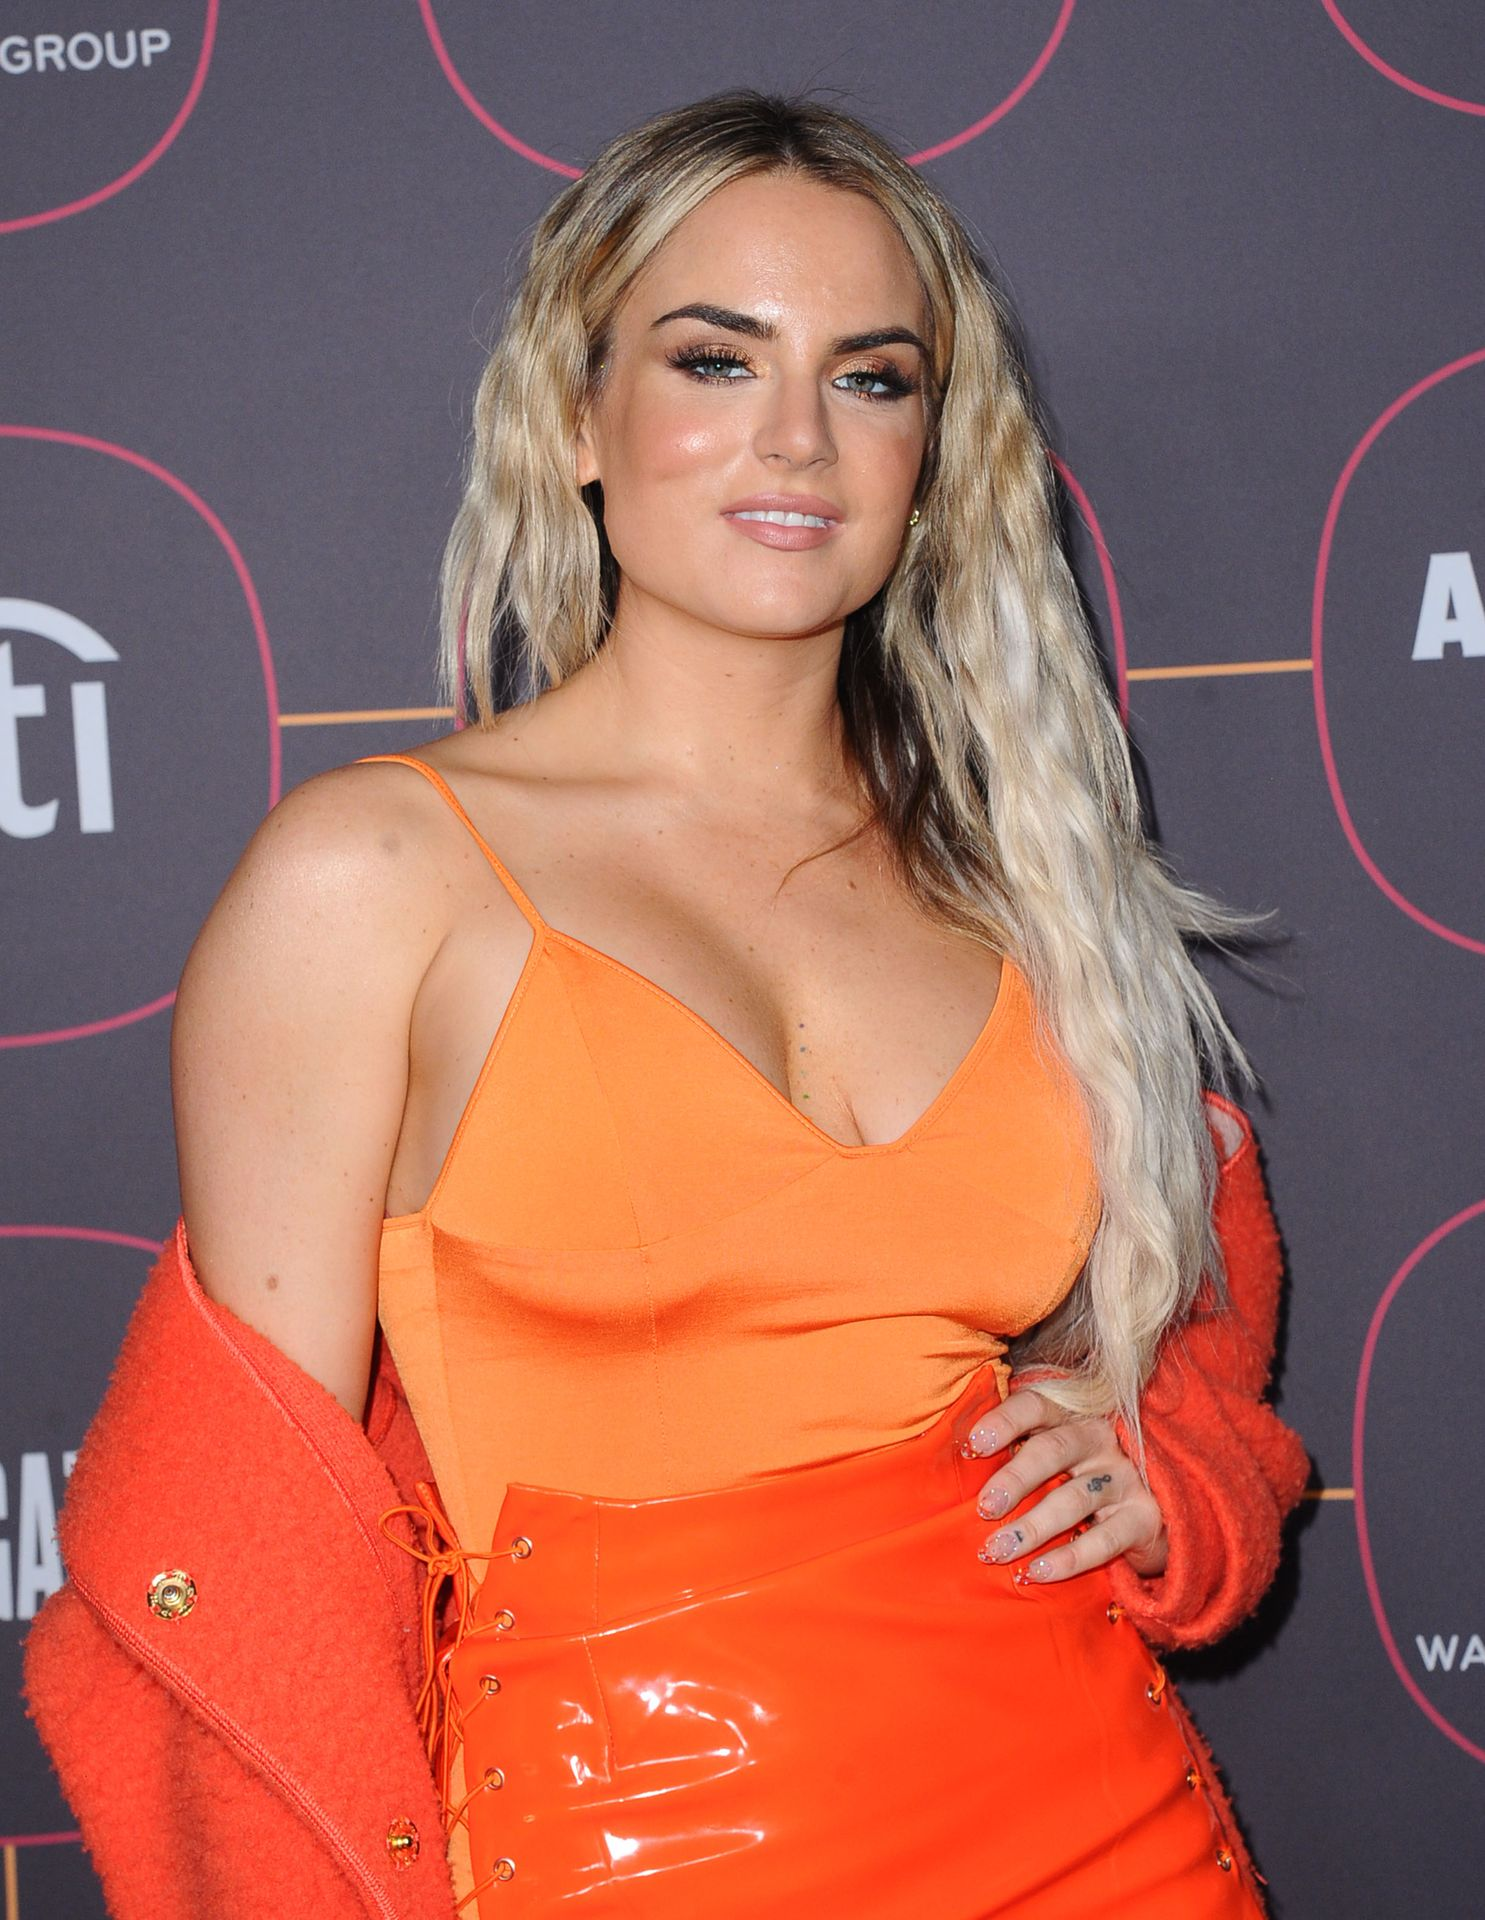 Jojo Shows Off Her Tits At The Warner Music Group Pre Grammy Party In Hollywood 0015